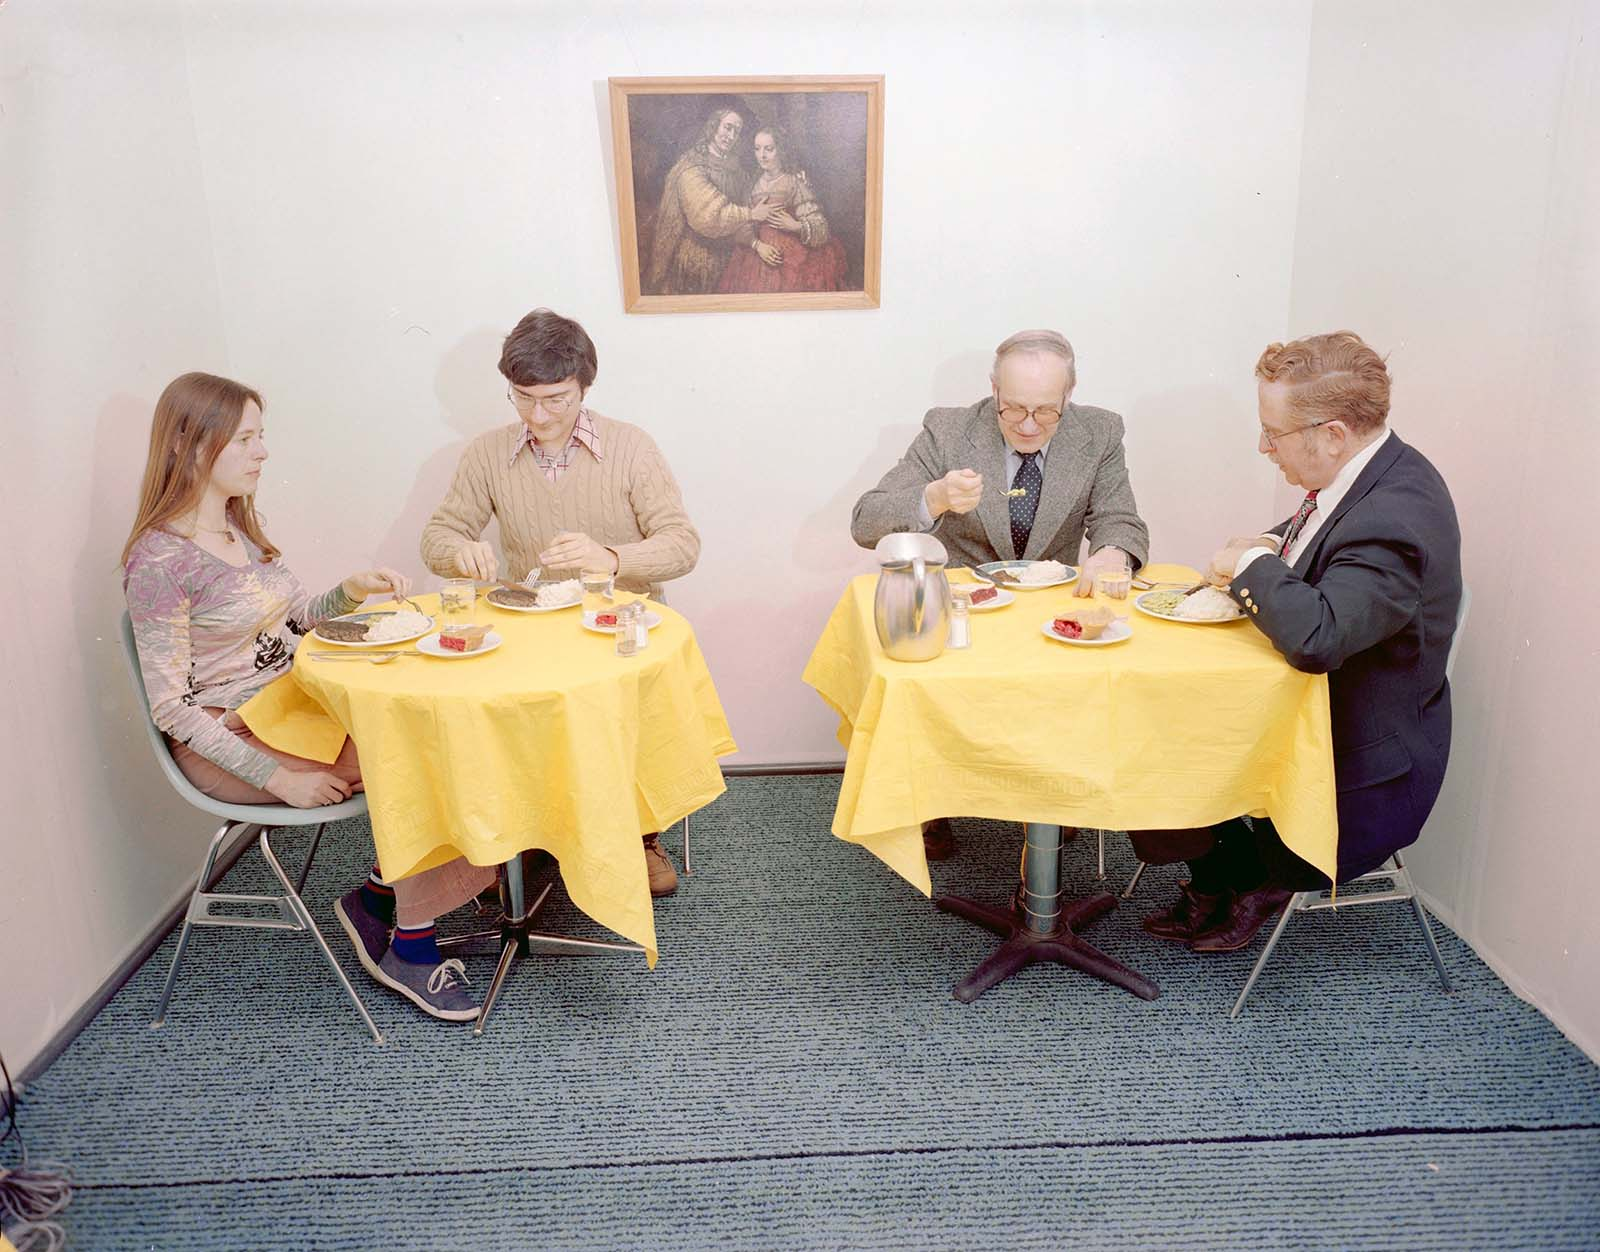 Eating chamber with test subjects, 1978.